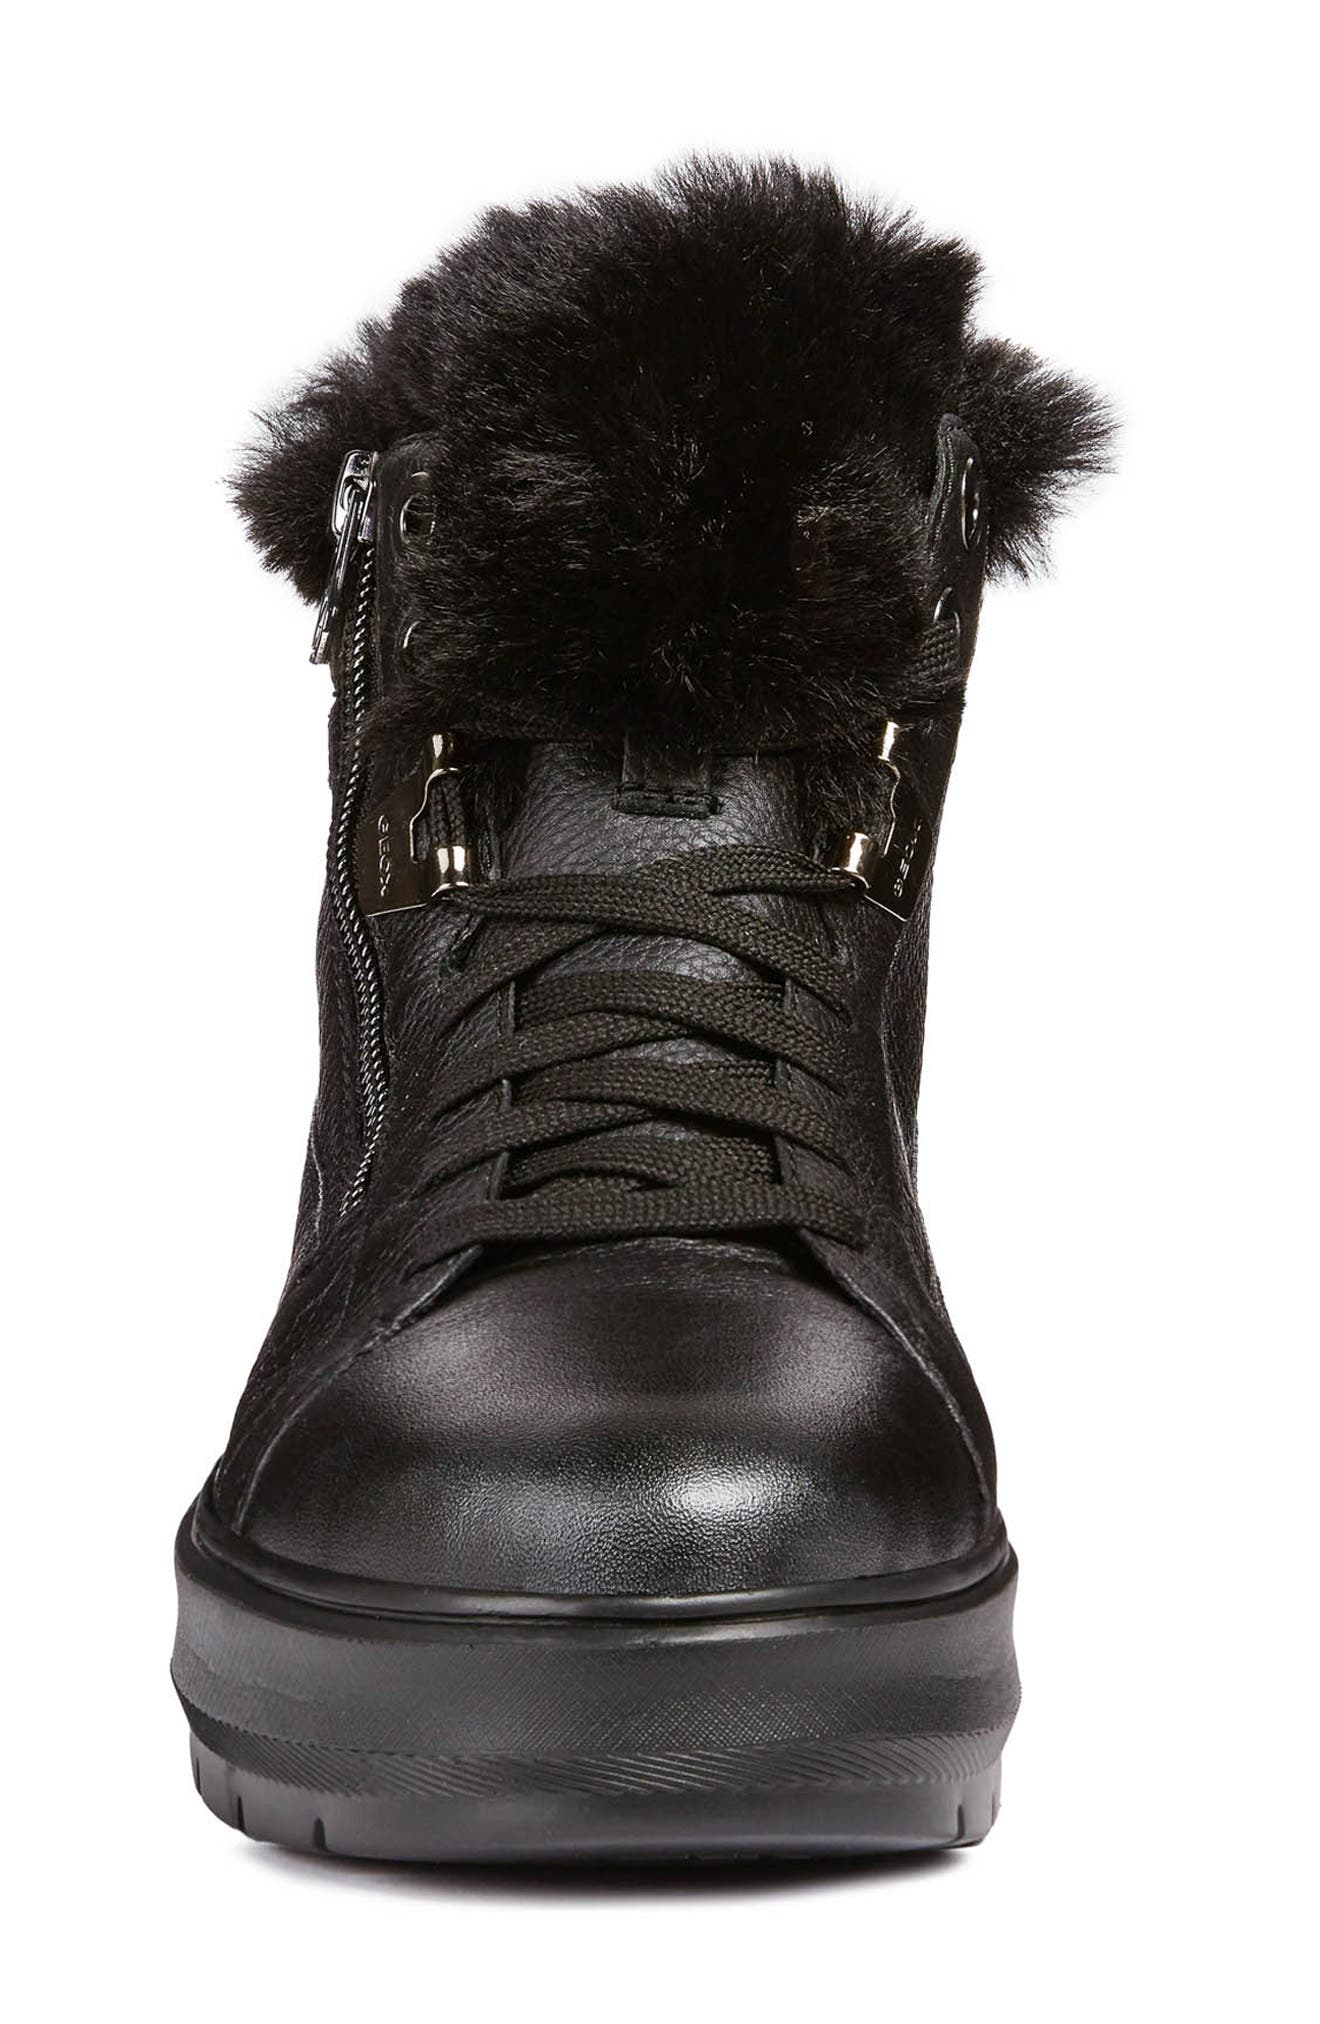 Kaula ABX Waterproof Faux-Fur Cuff Sneaker,                             Alternate thumbnail 4, color,                             BLACK LEATHER